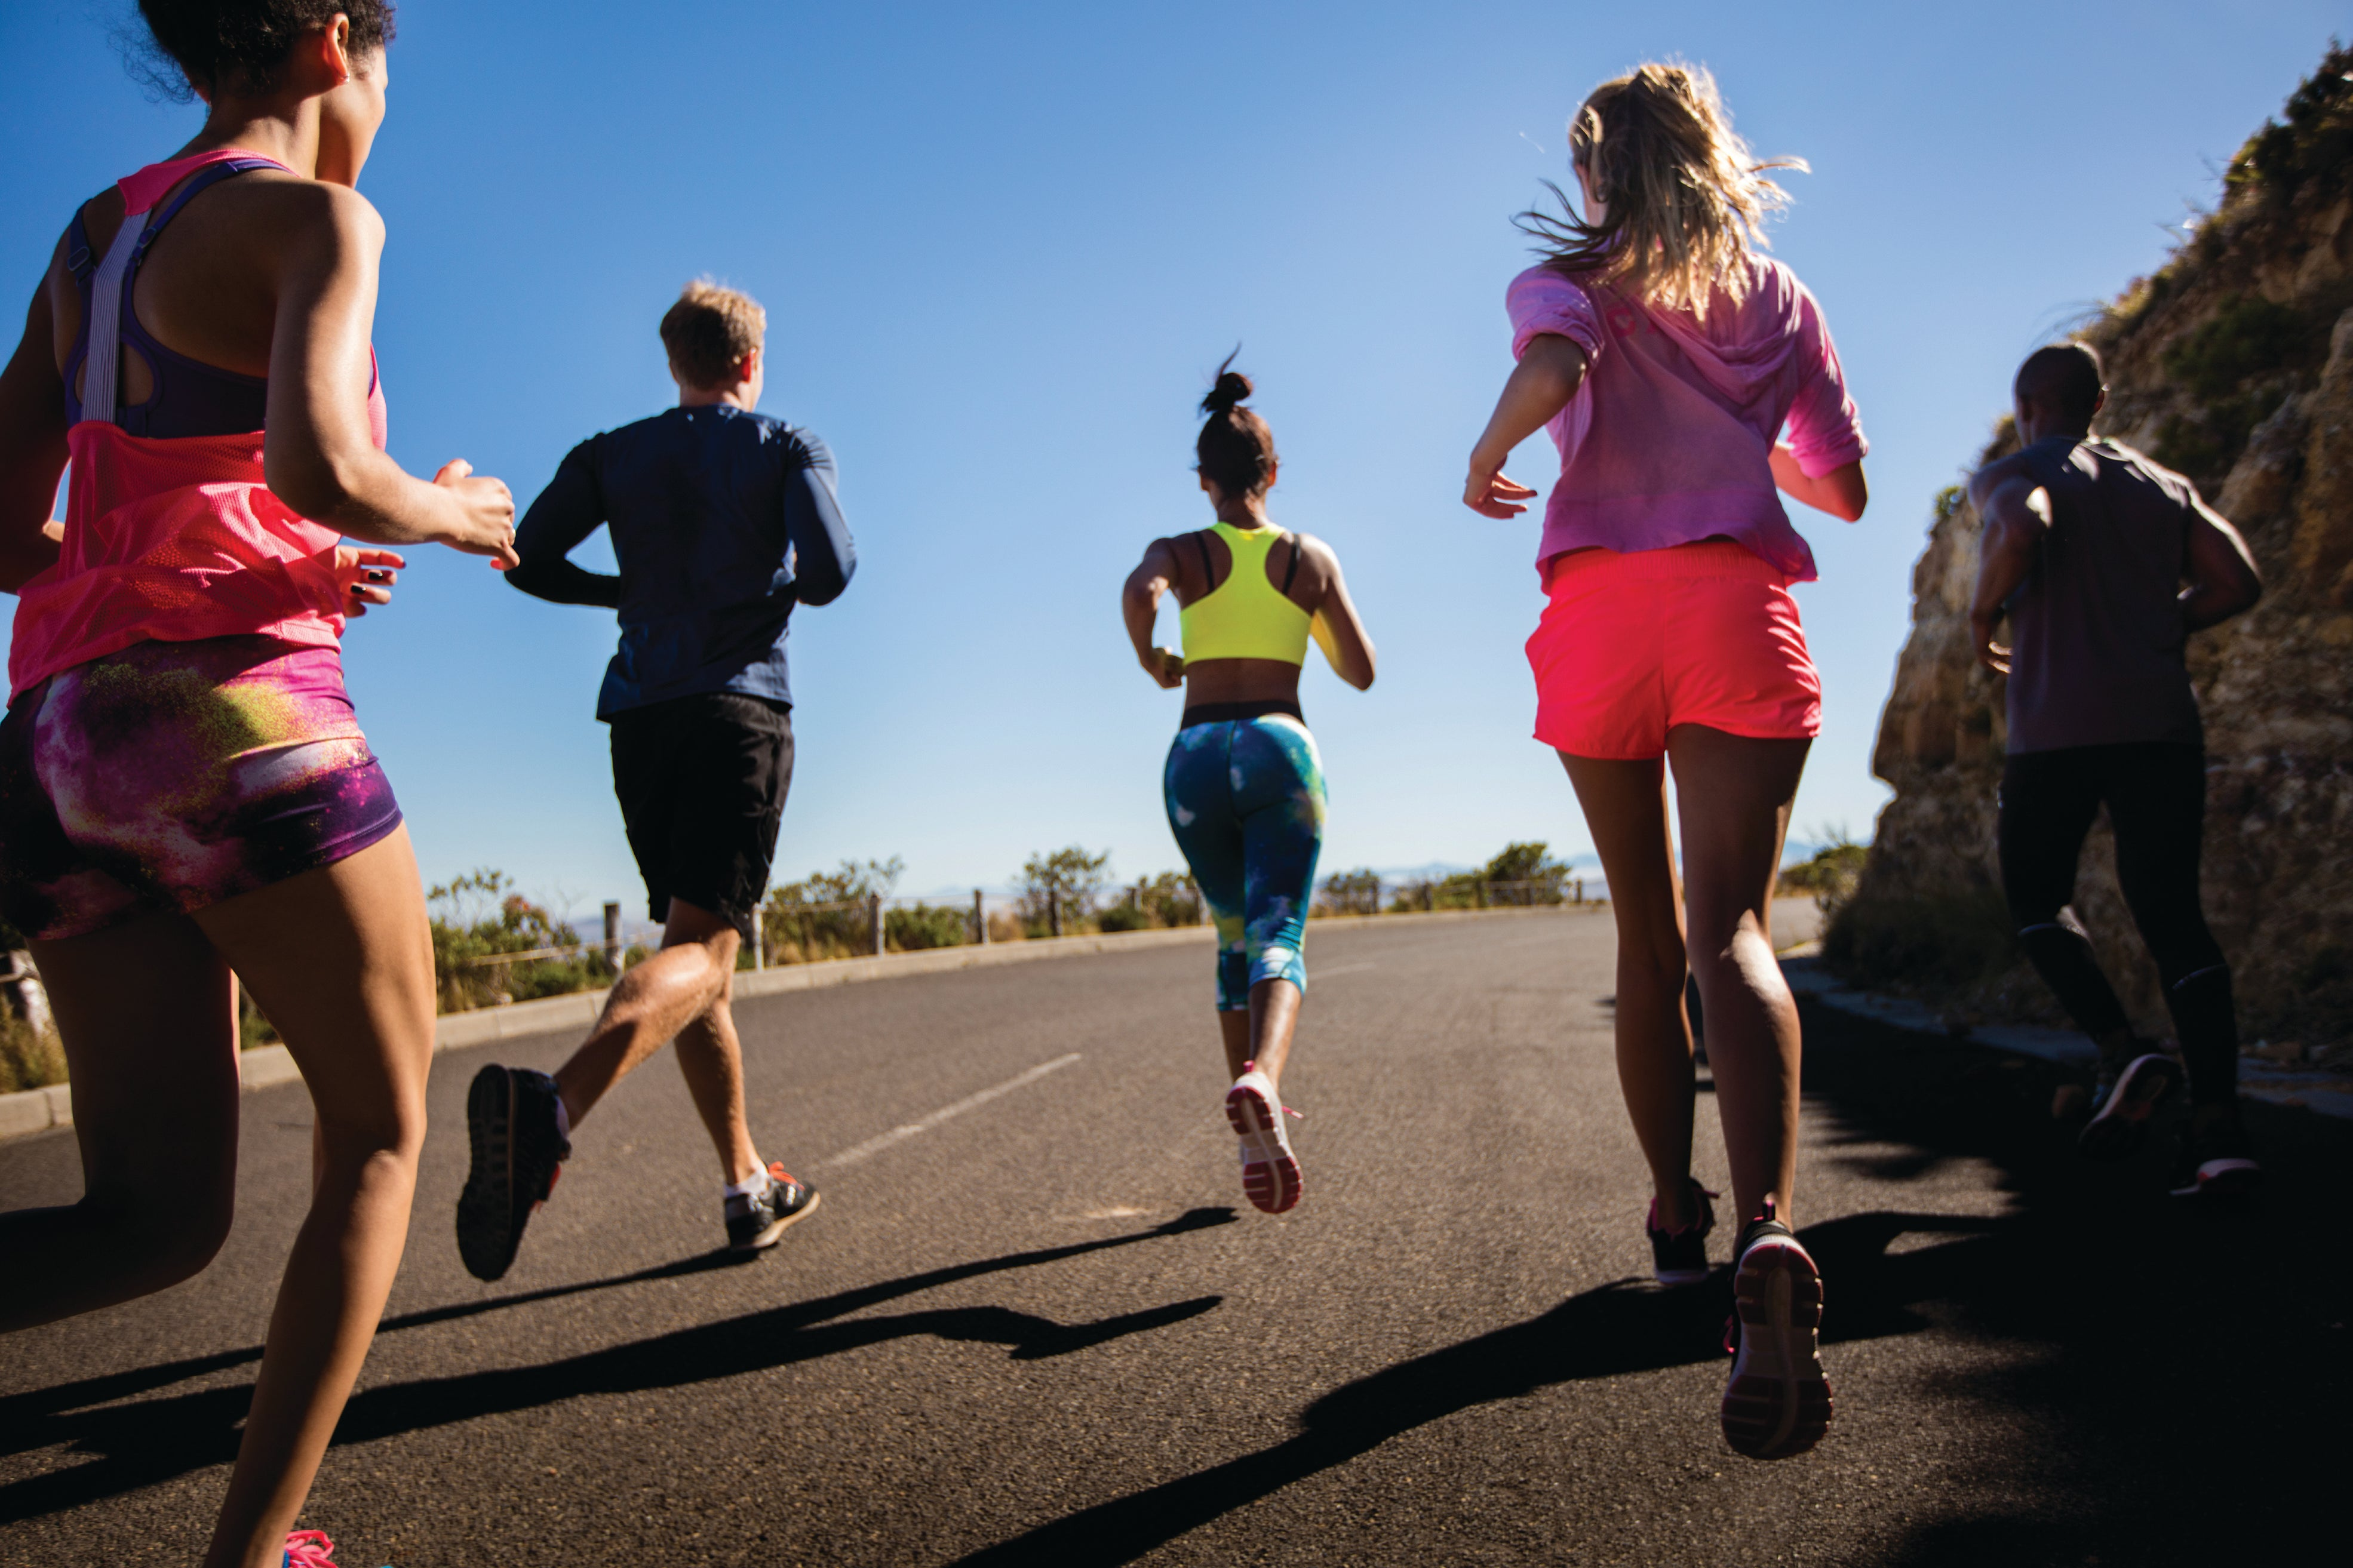 Group of athletes running outdoors in summer